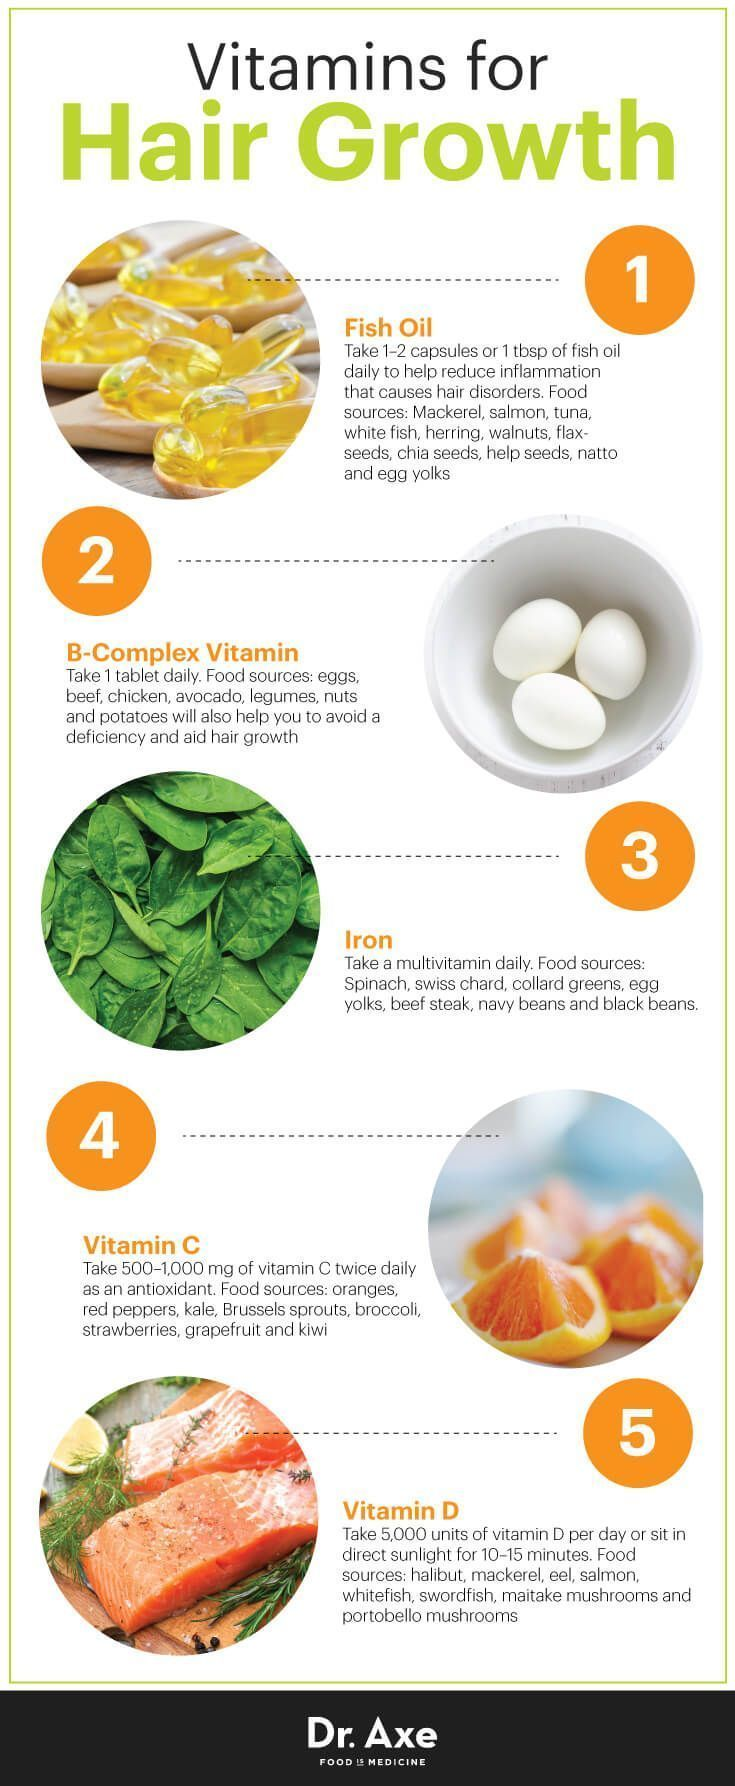 Top 6 Vitamins for Hair Growth (#2 Is Essential) - Dr. Axe #hairlosstreatment #InfotoHairLossTreatments